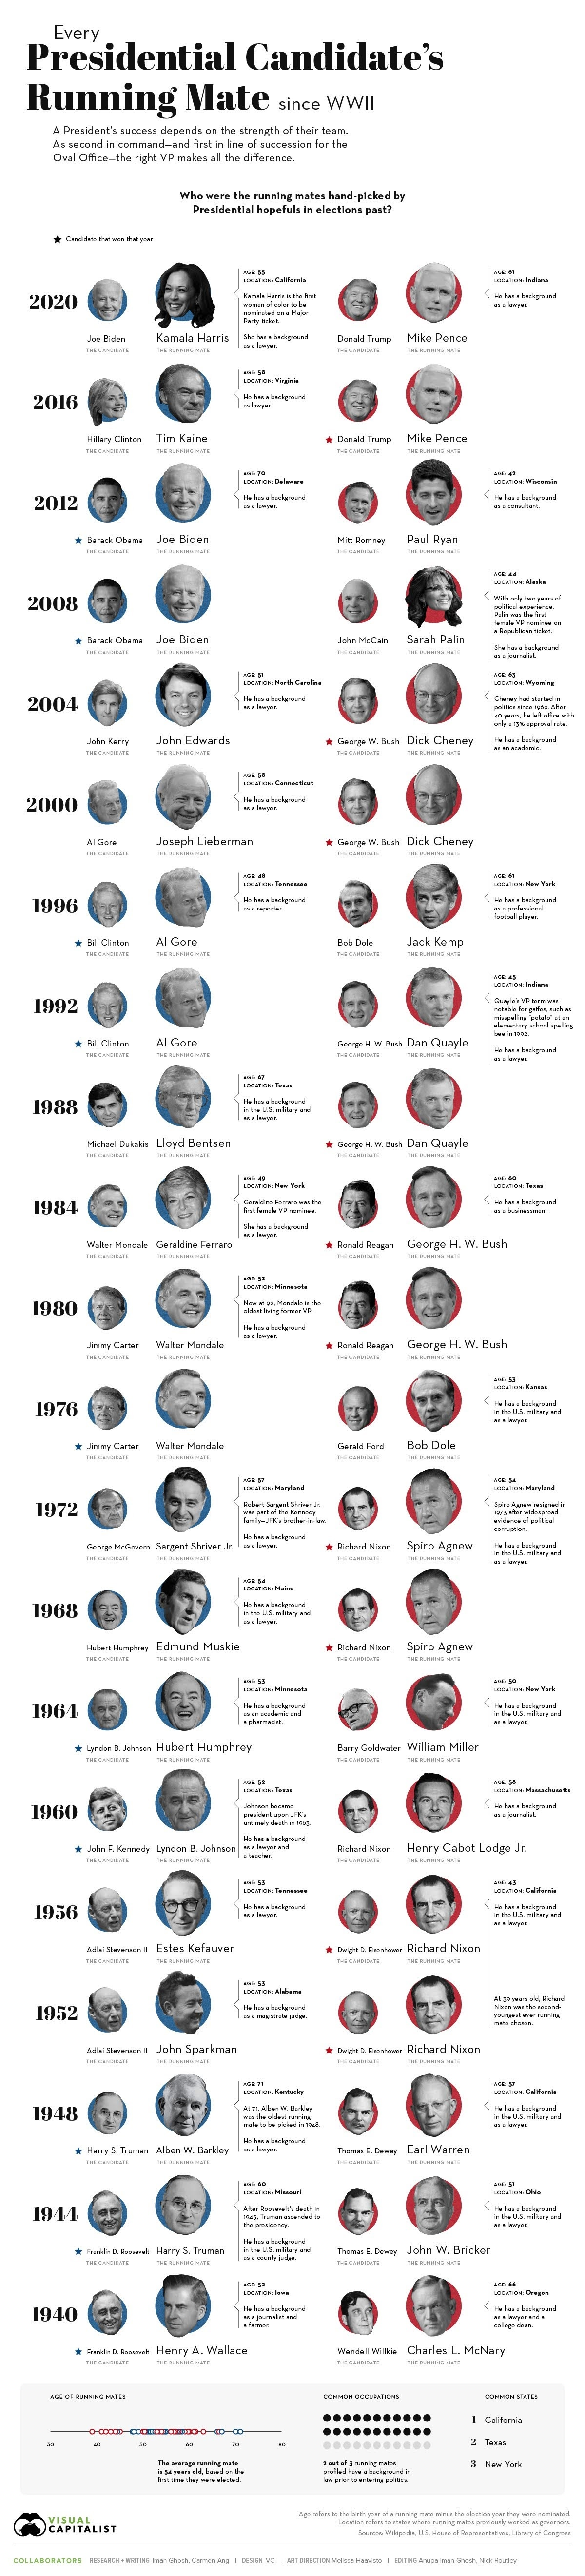 Every Presidential Candidate's Running Mate Since WWII #infographic